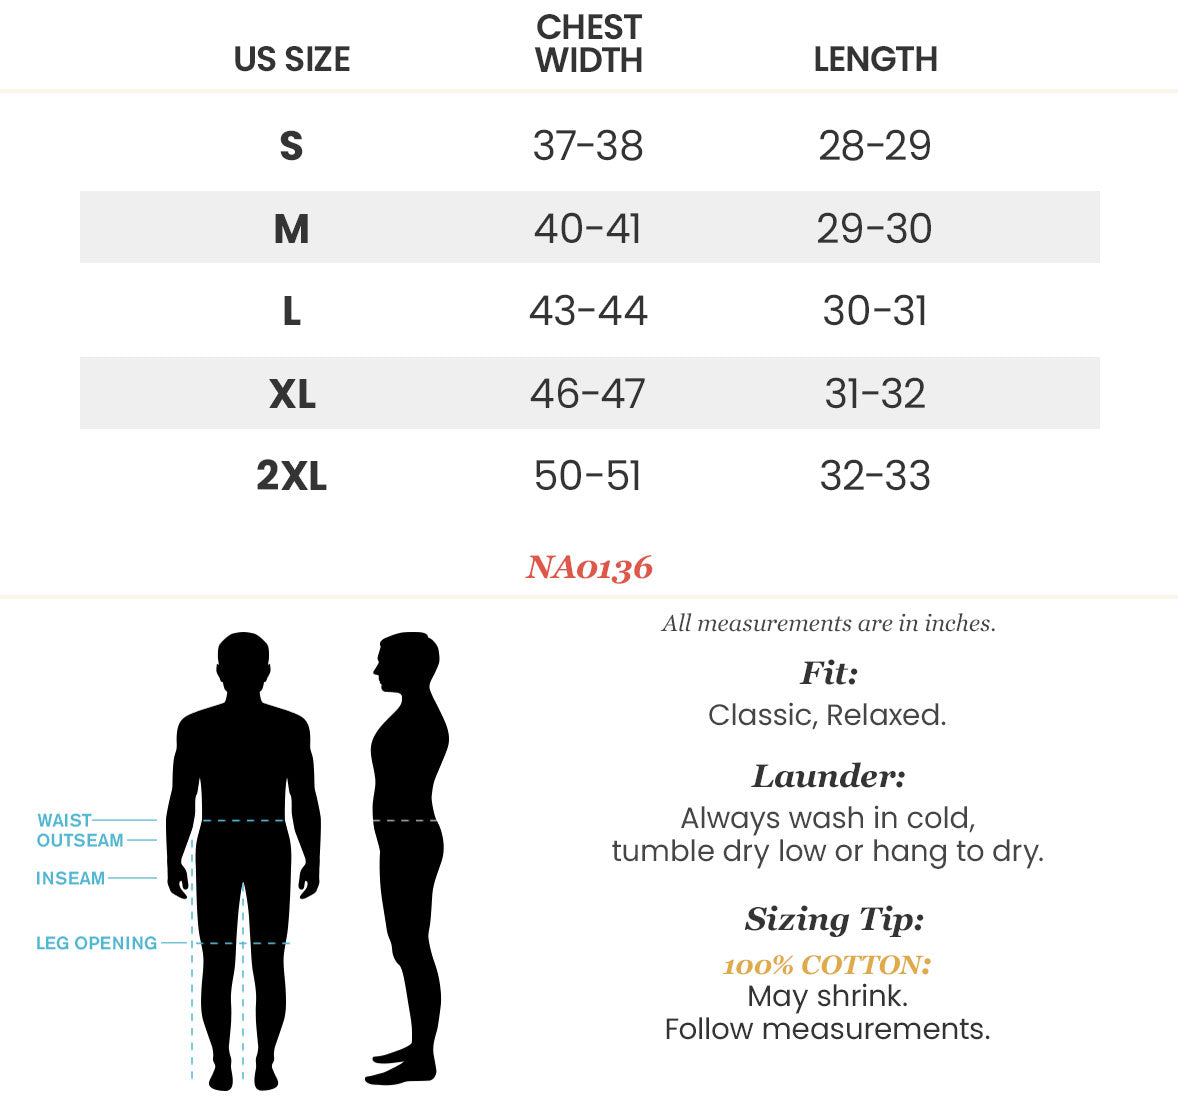 NA0136-XPRT Men's Graphic T-Shirt Size Chart